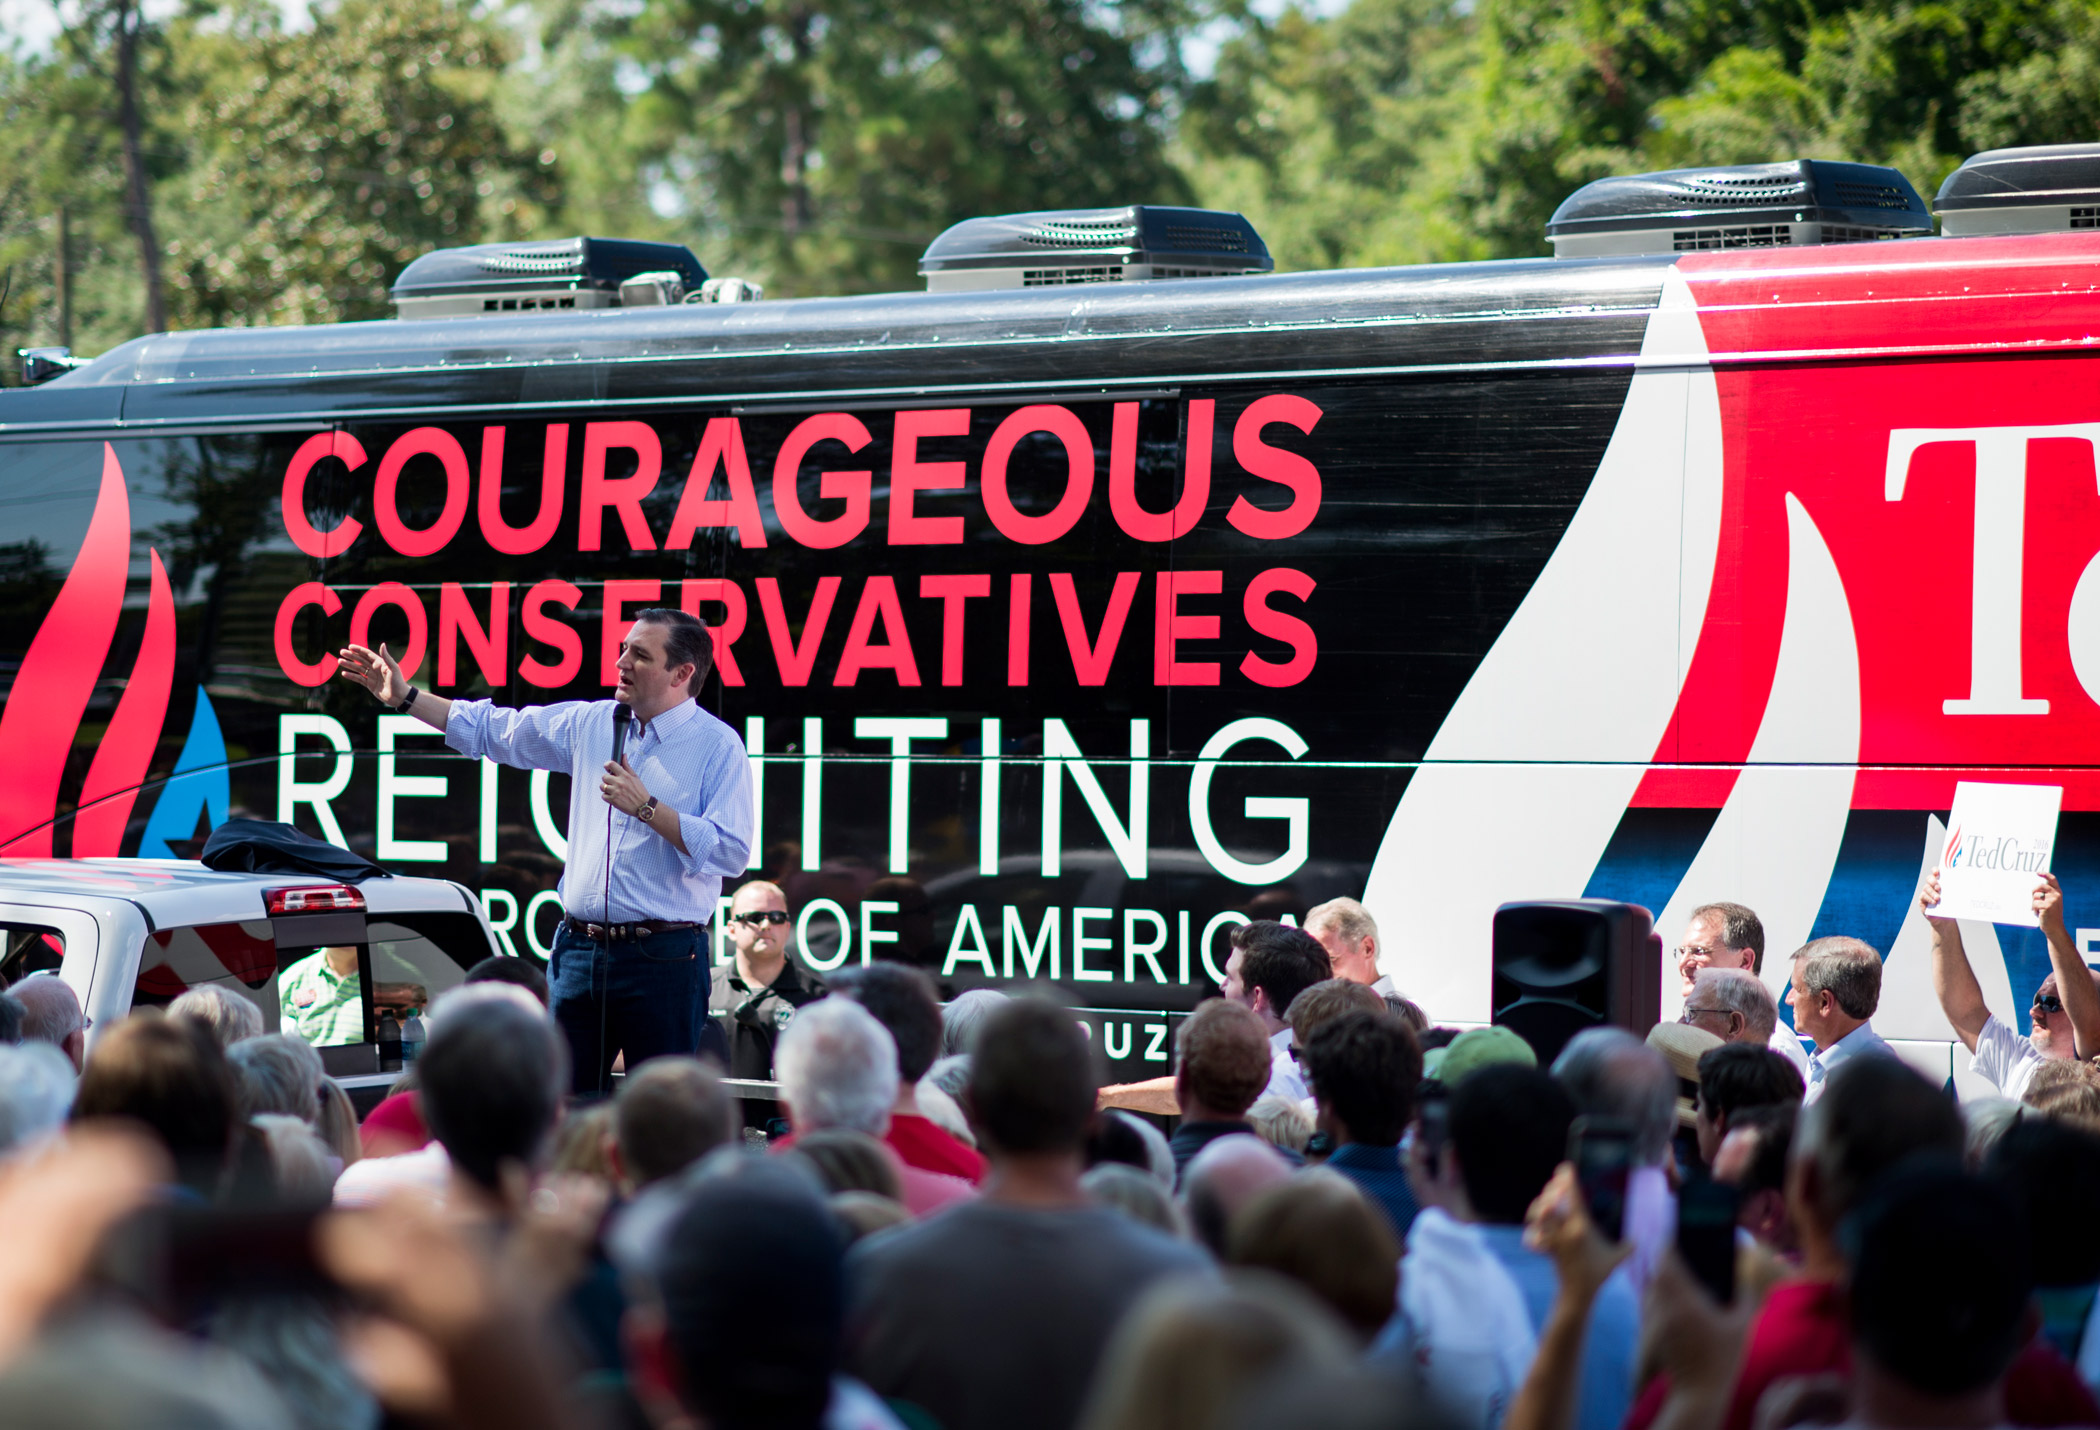 Republican presidential candidate Sen. Ted Cruz speaks to supporters in front of his campaign bus  in Newnan, Ga., on Aug. 8, 2015.